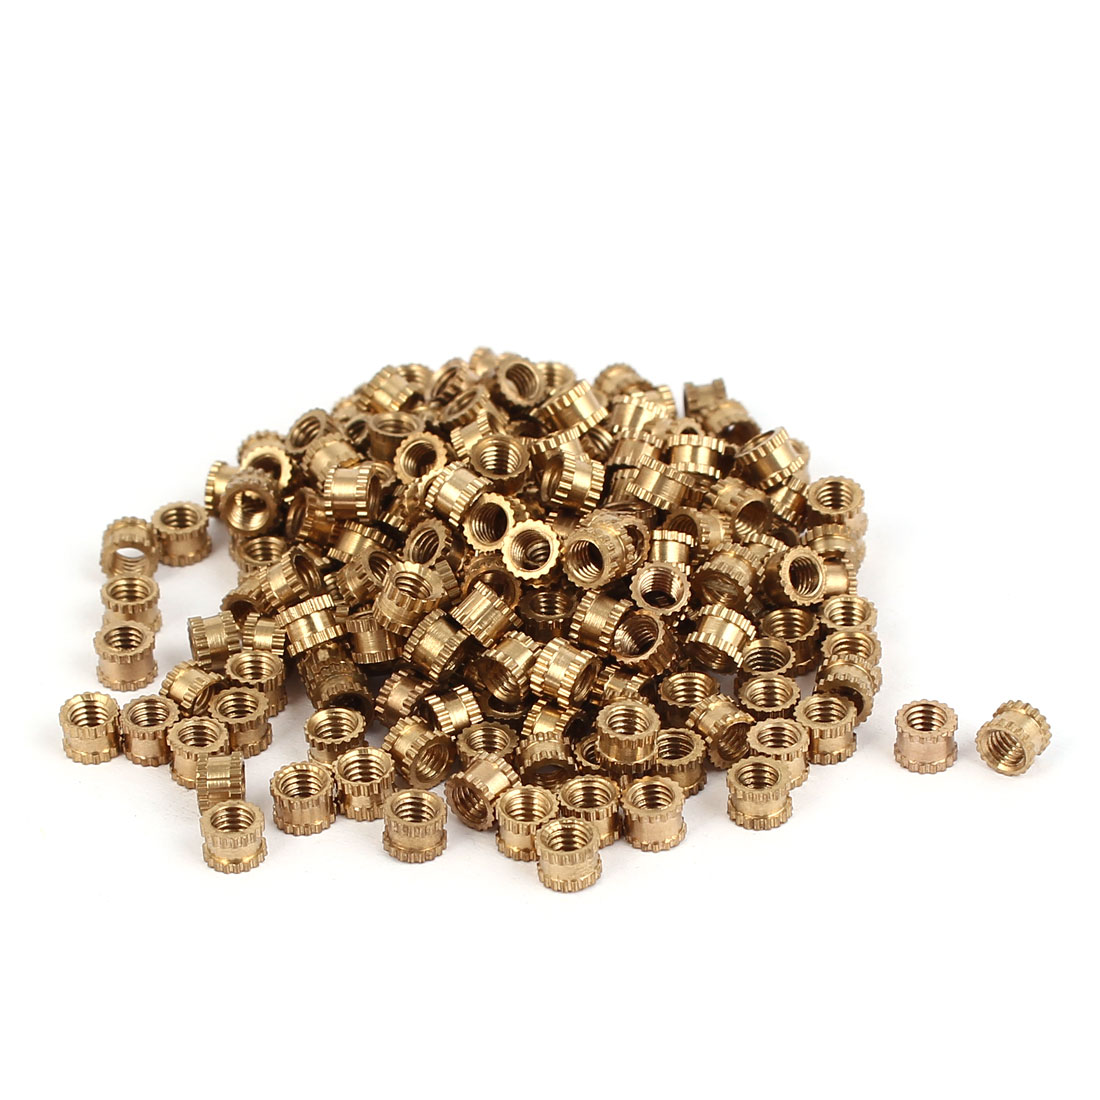 M3 x 3mm Brass Cylindrical Knurled Threaded Round Insert Embedded Nuts 200PCS